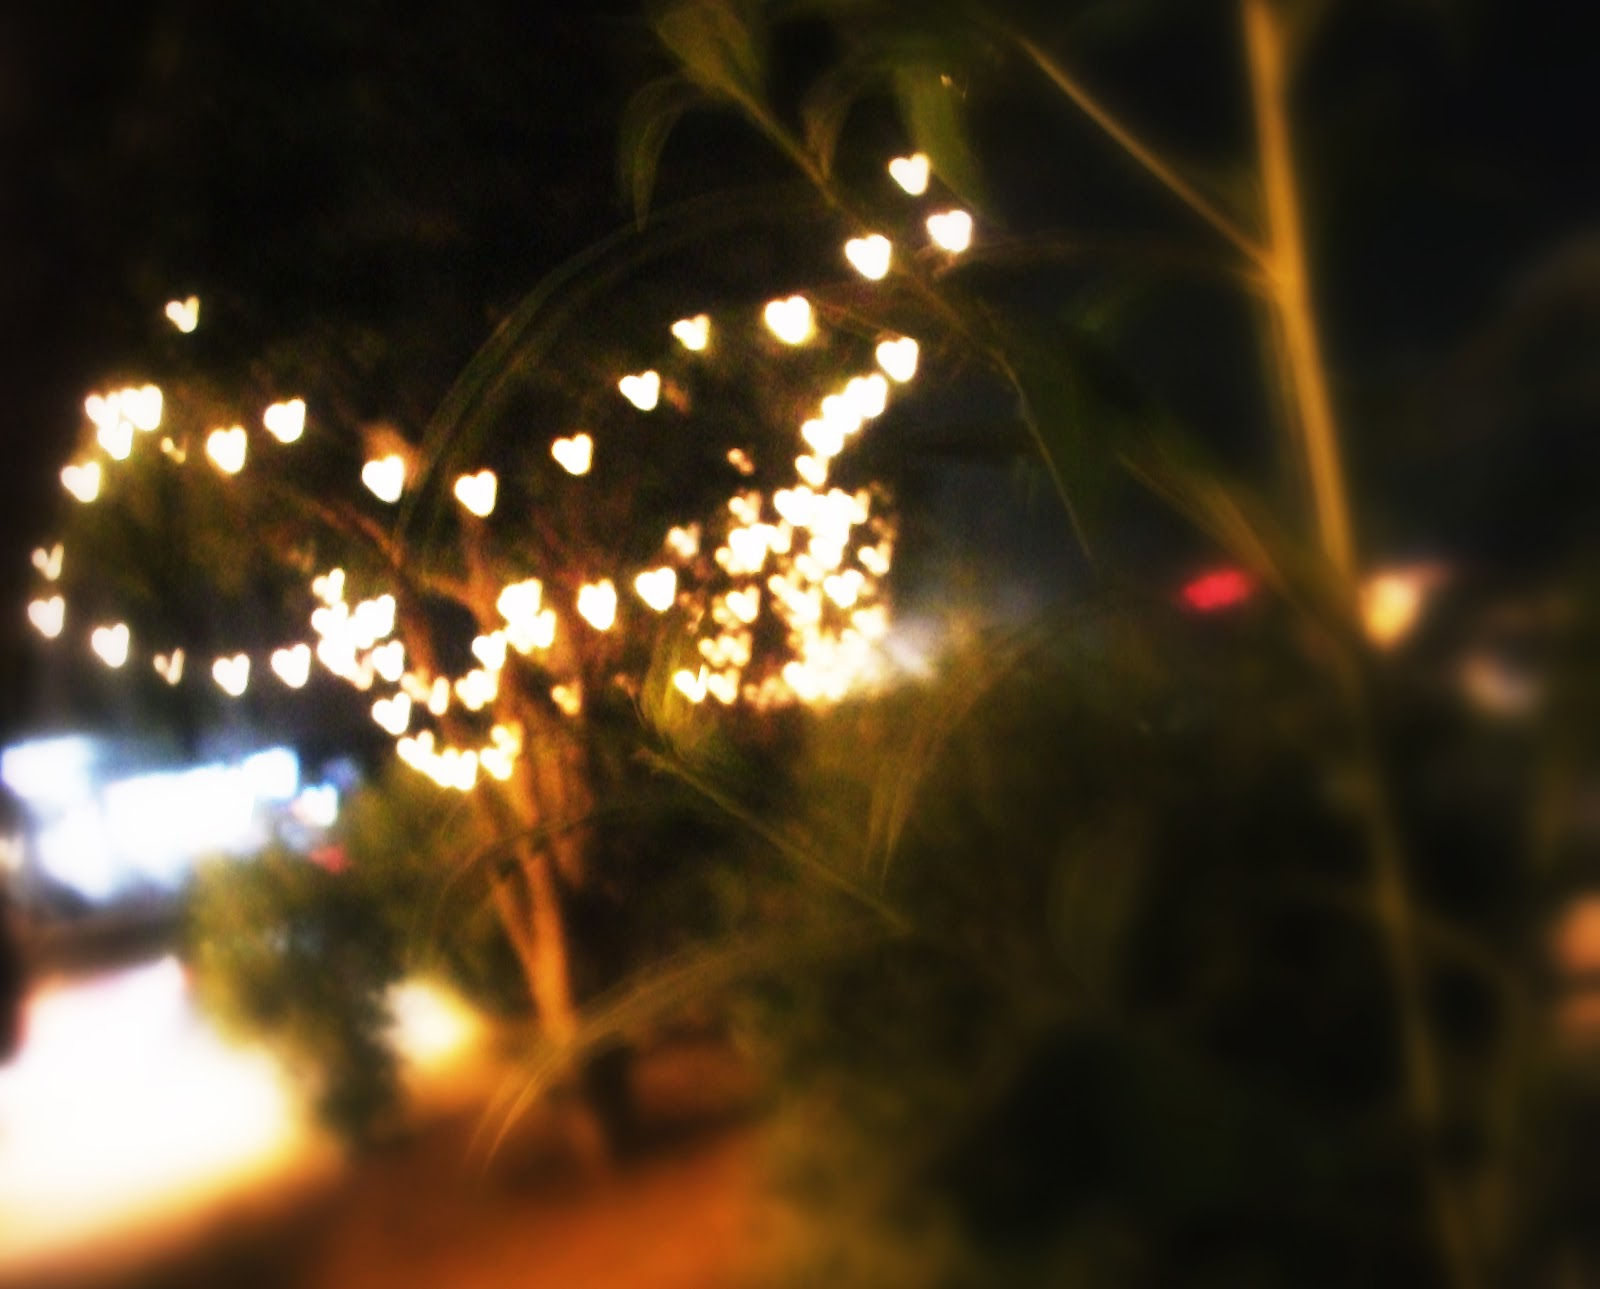 Night Bokeh Images - Reverse Search